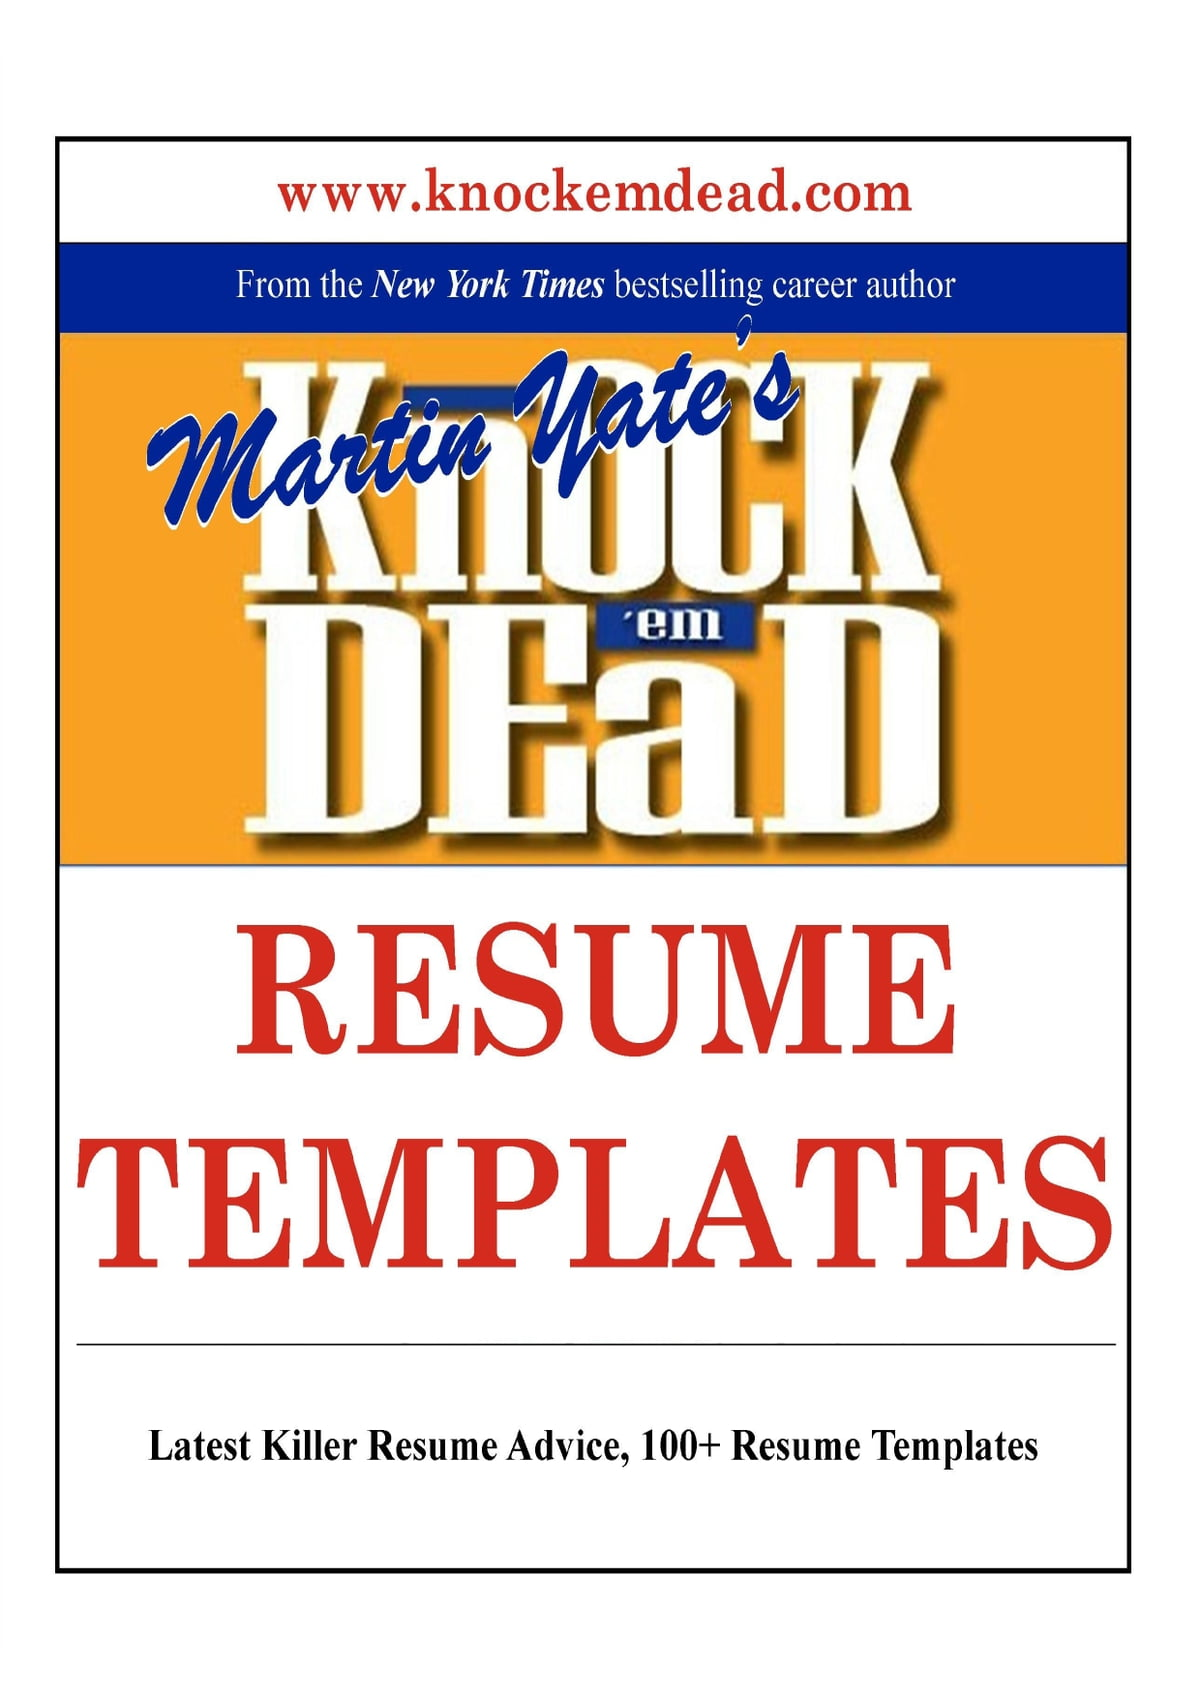 knock em dead resume templates ebook by martin yate